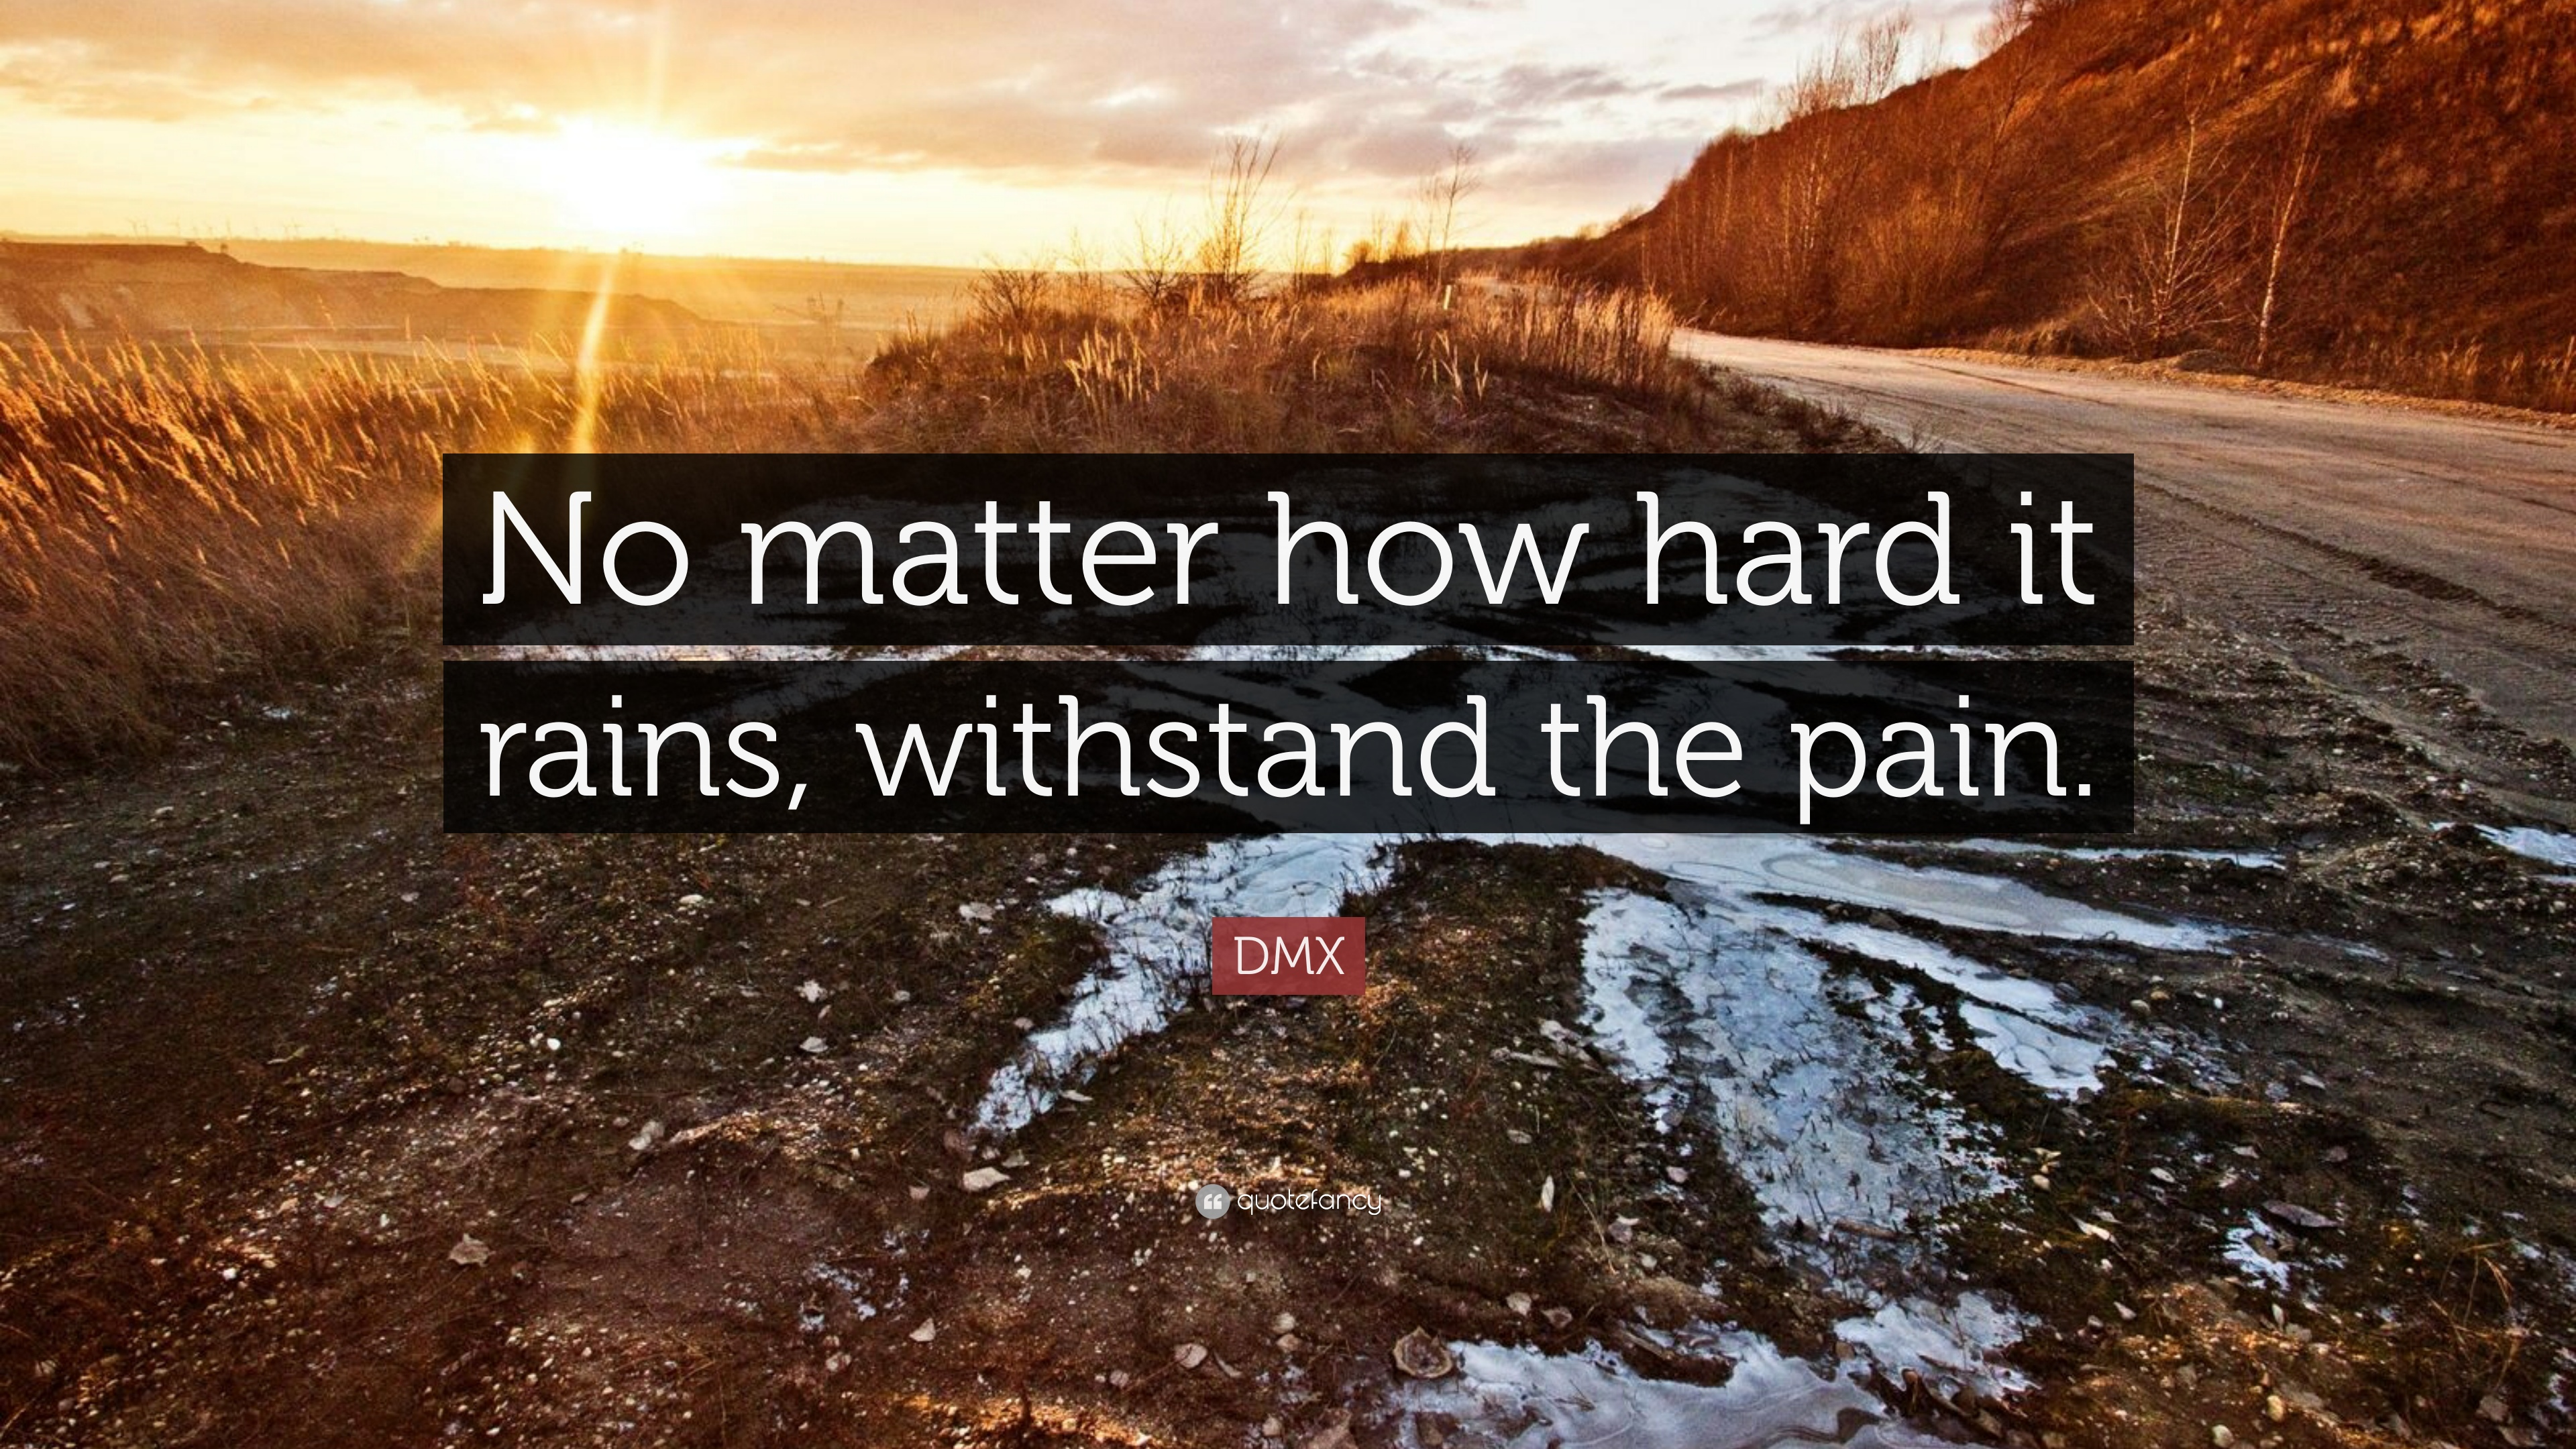 DMX Quote No Matter How Hard It Rains Withstand The Pain